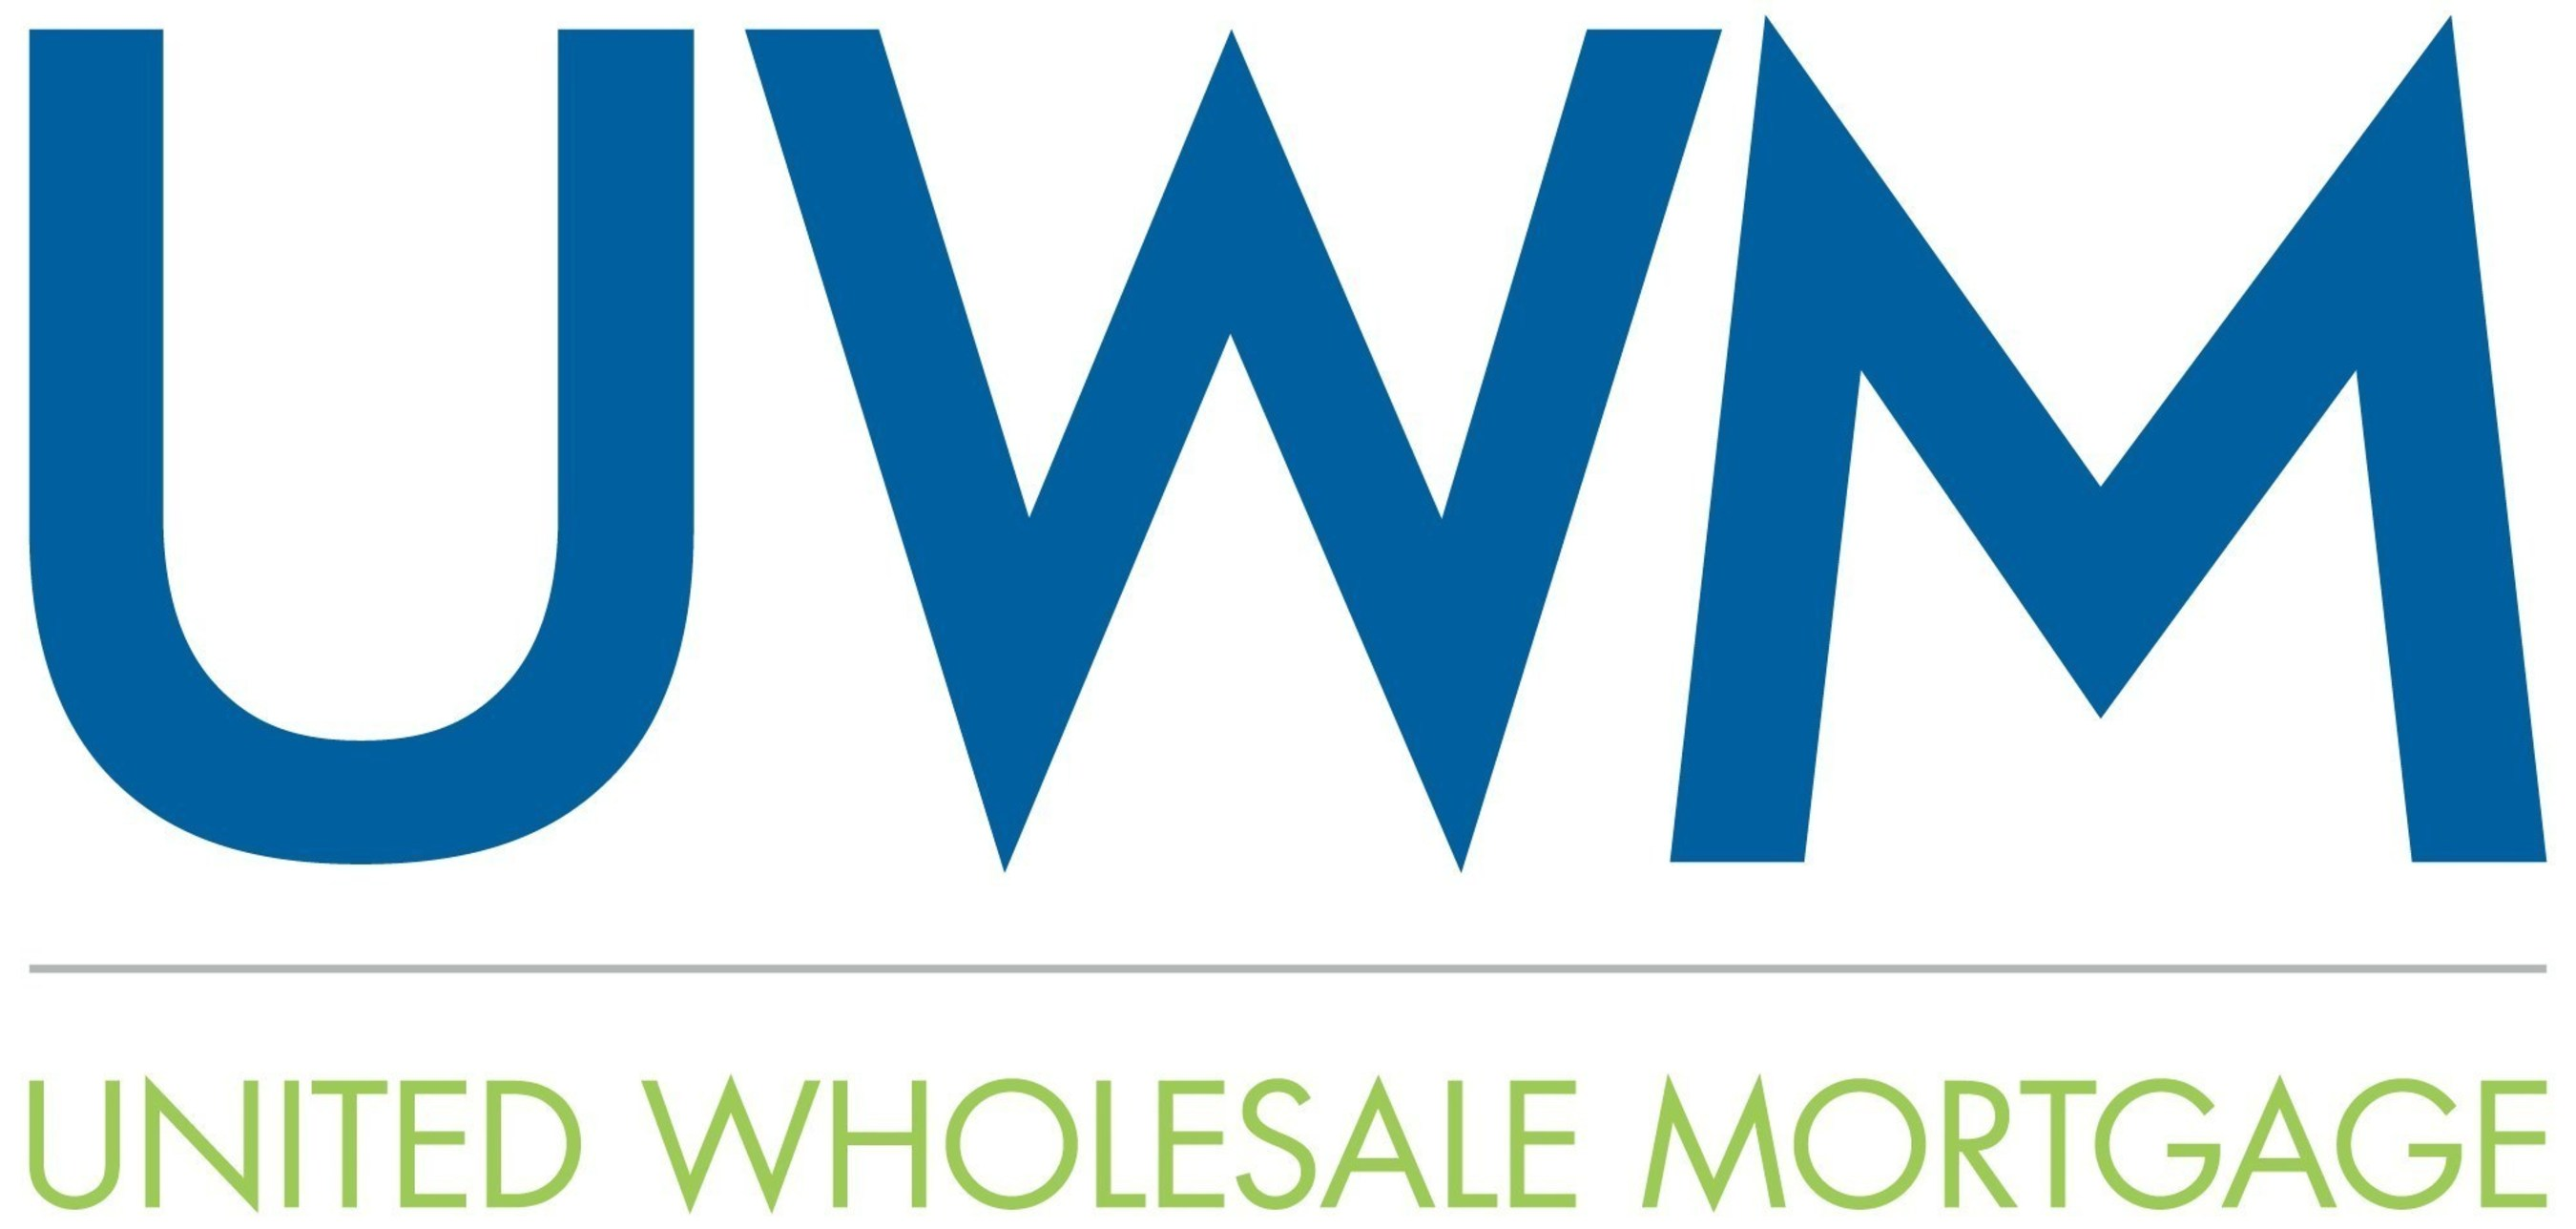 Headquartered in Troy, Michigan, United Wholesale Mortgage (UWM) is the #1 wholesale lender in the nation. UWM ...